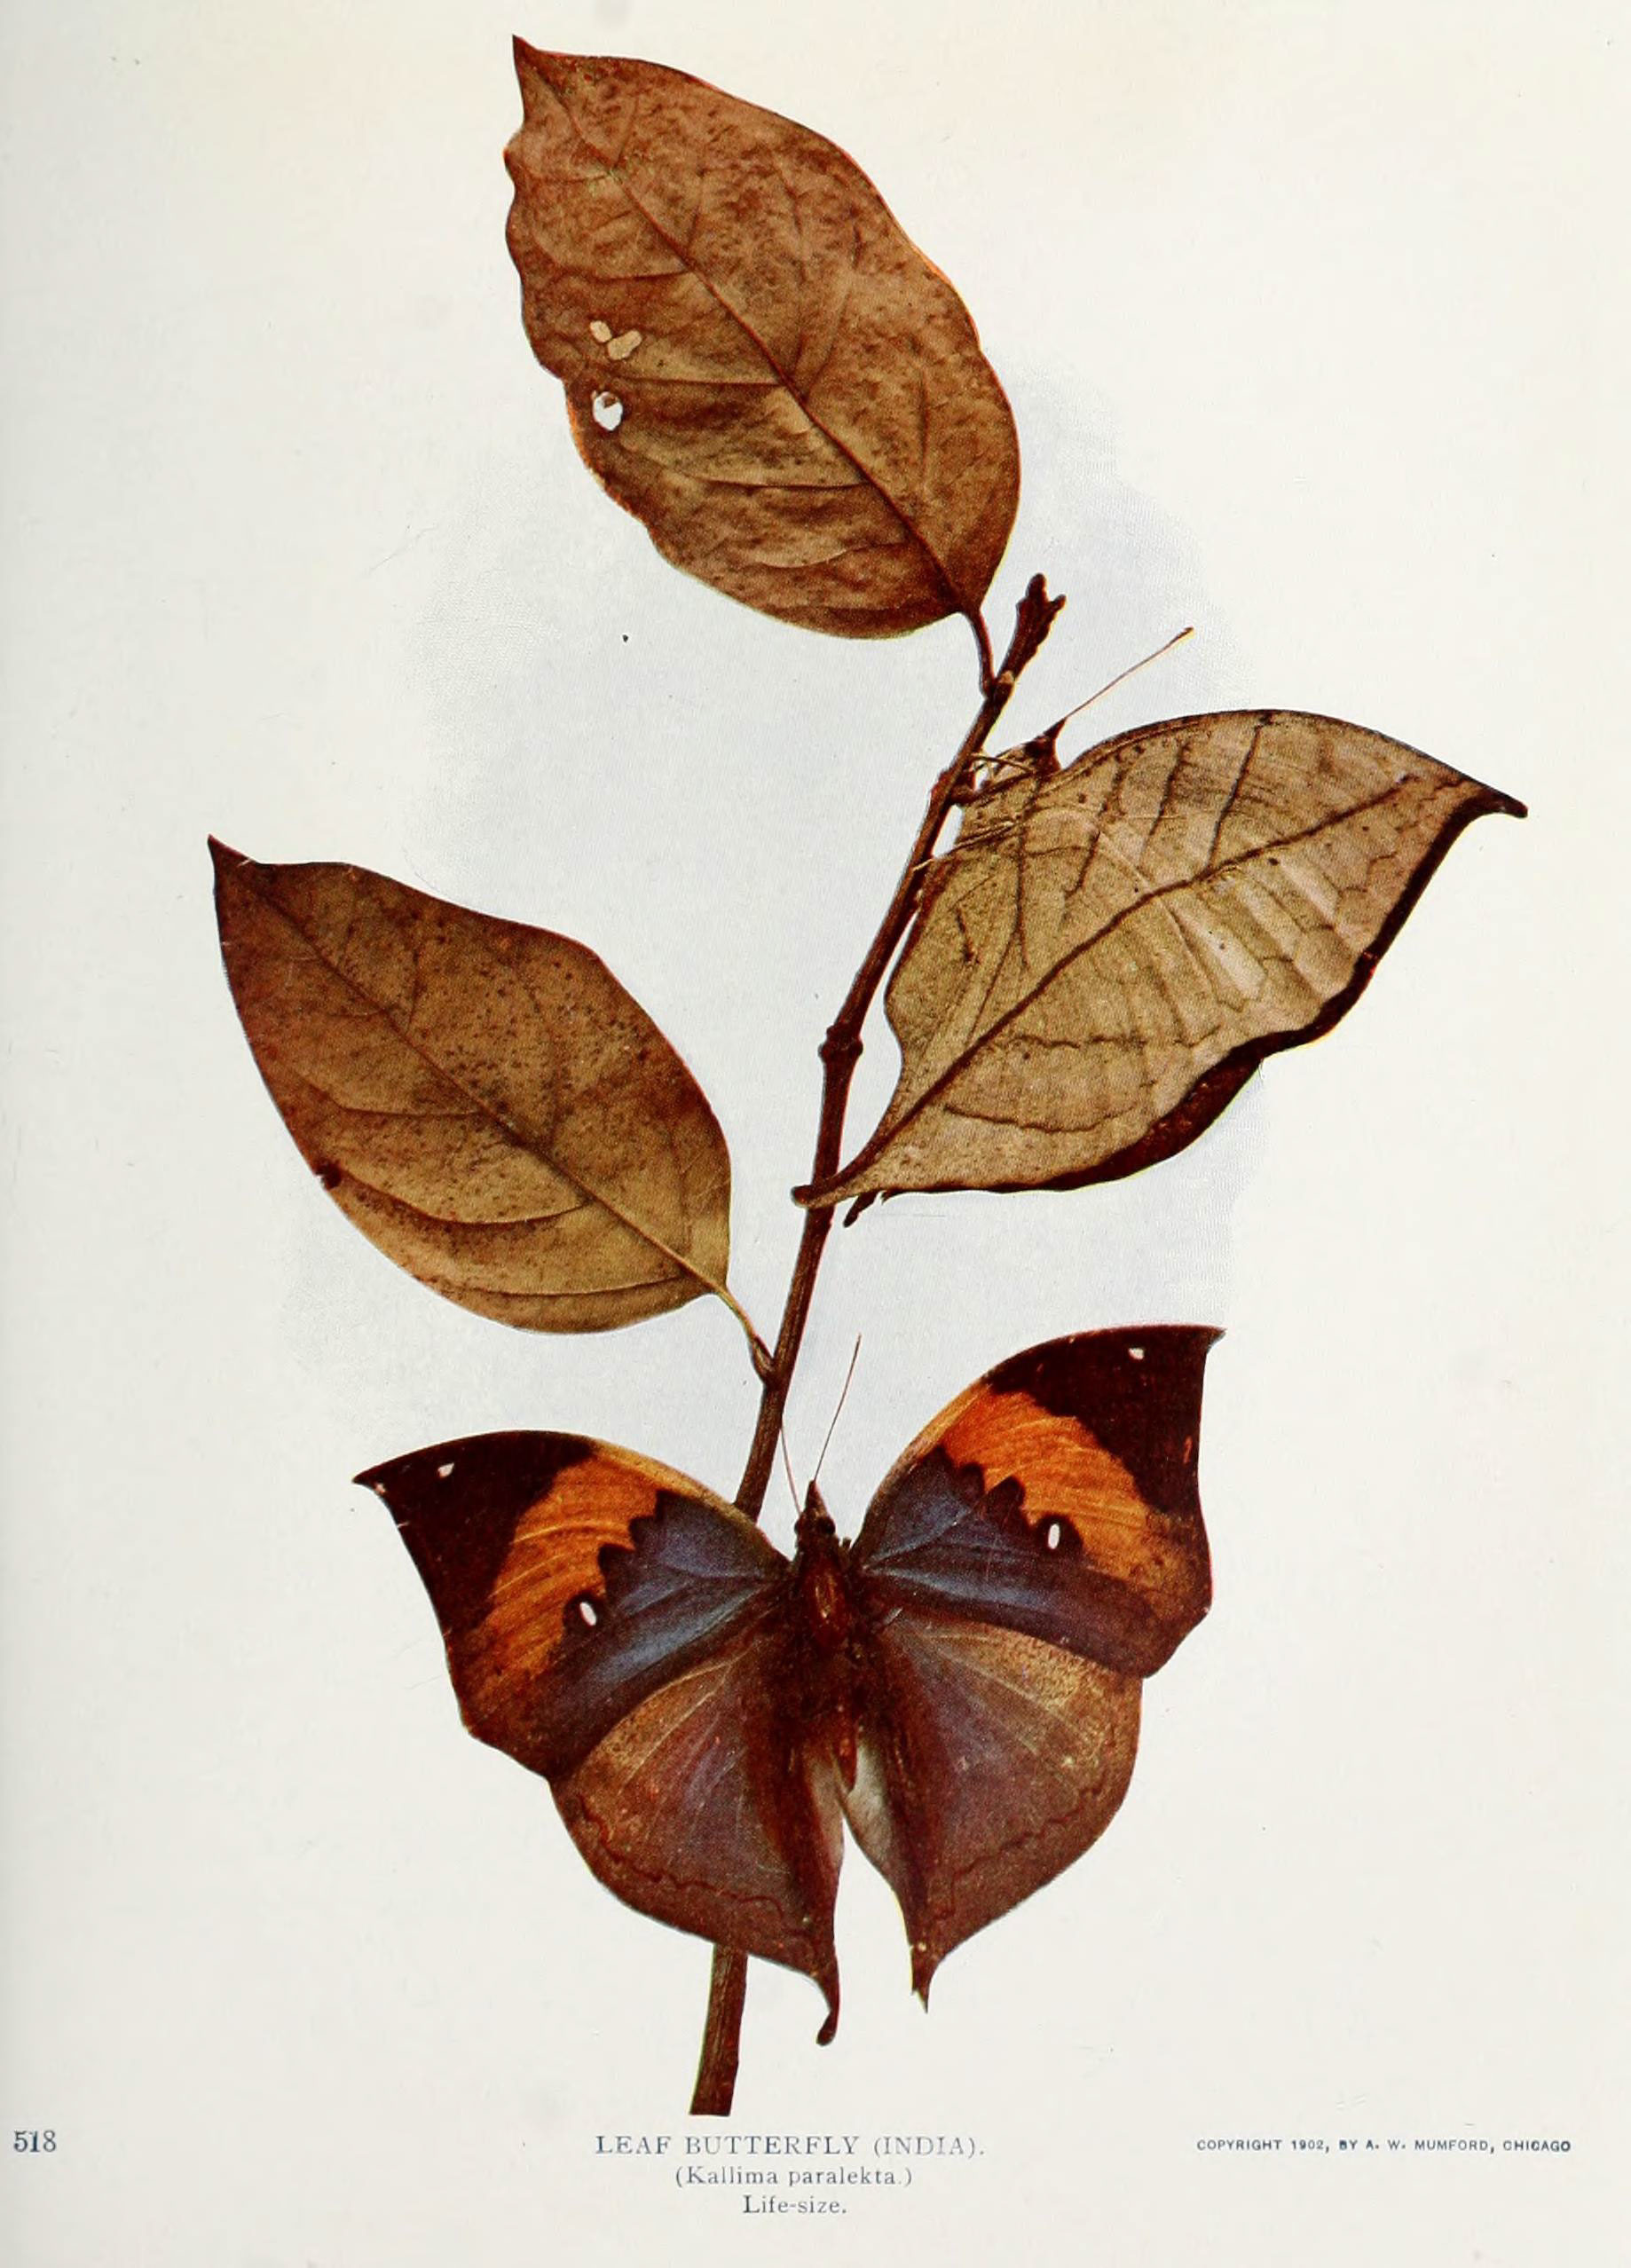 Image of Indian leafwing